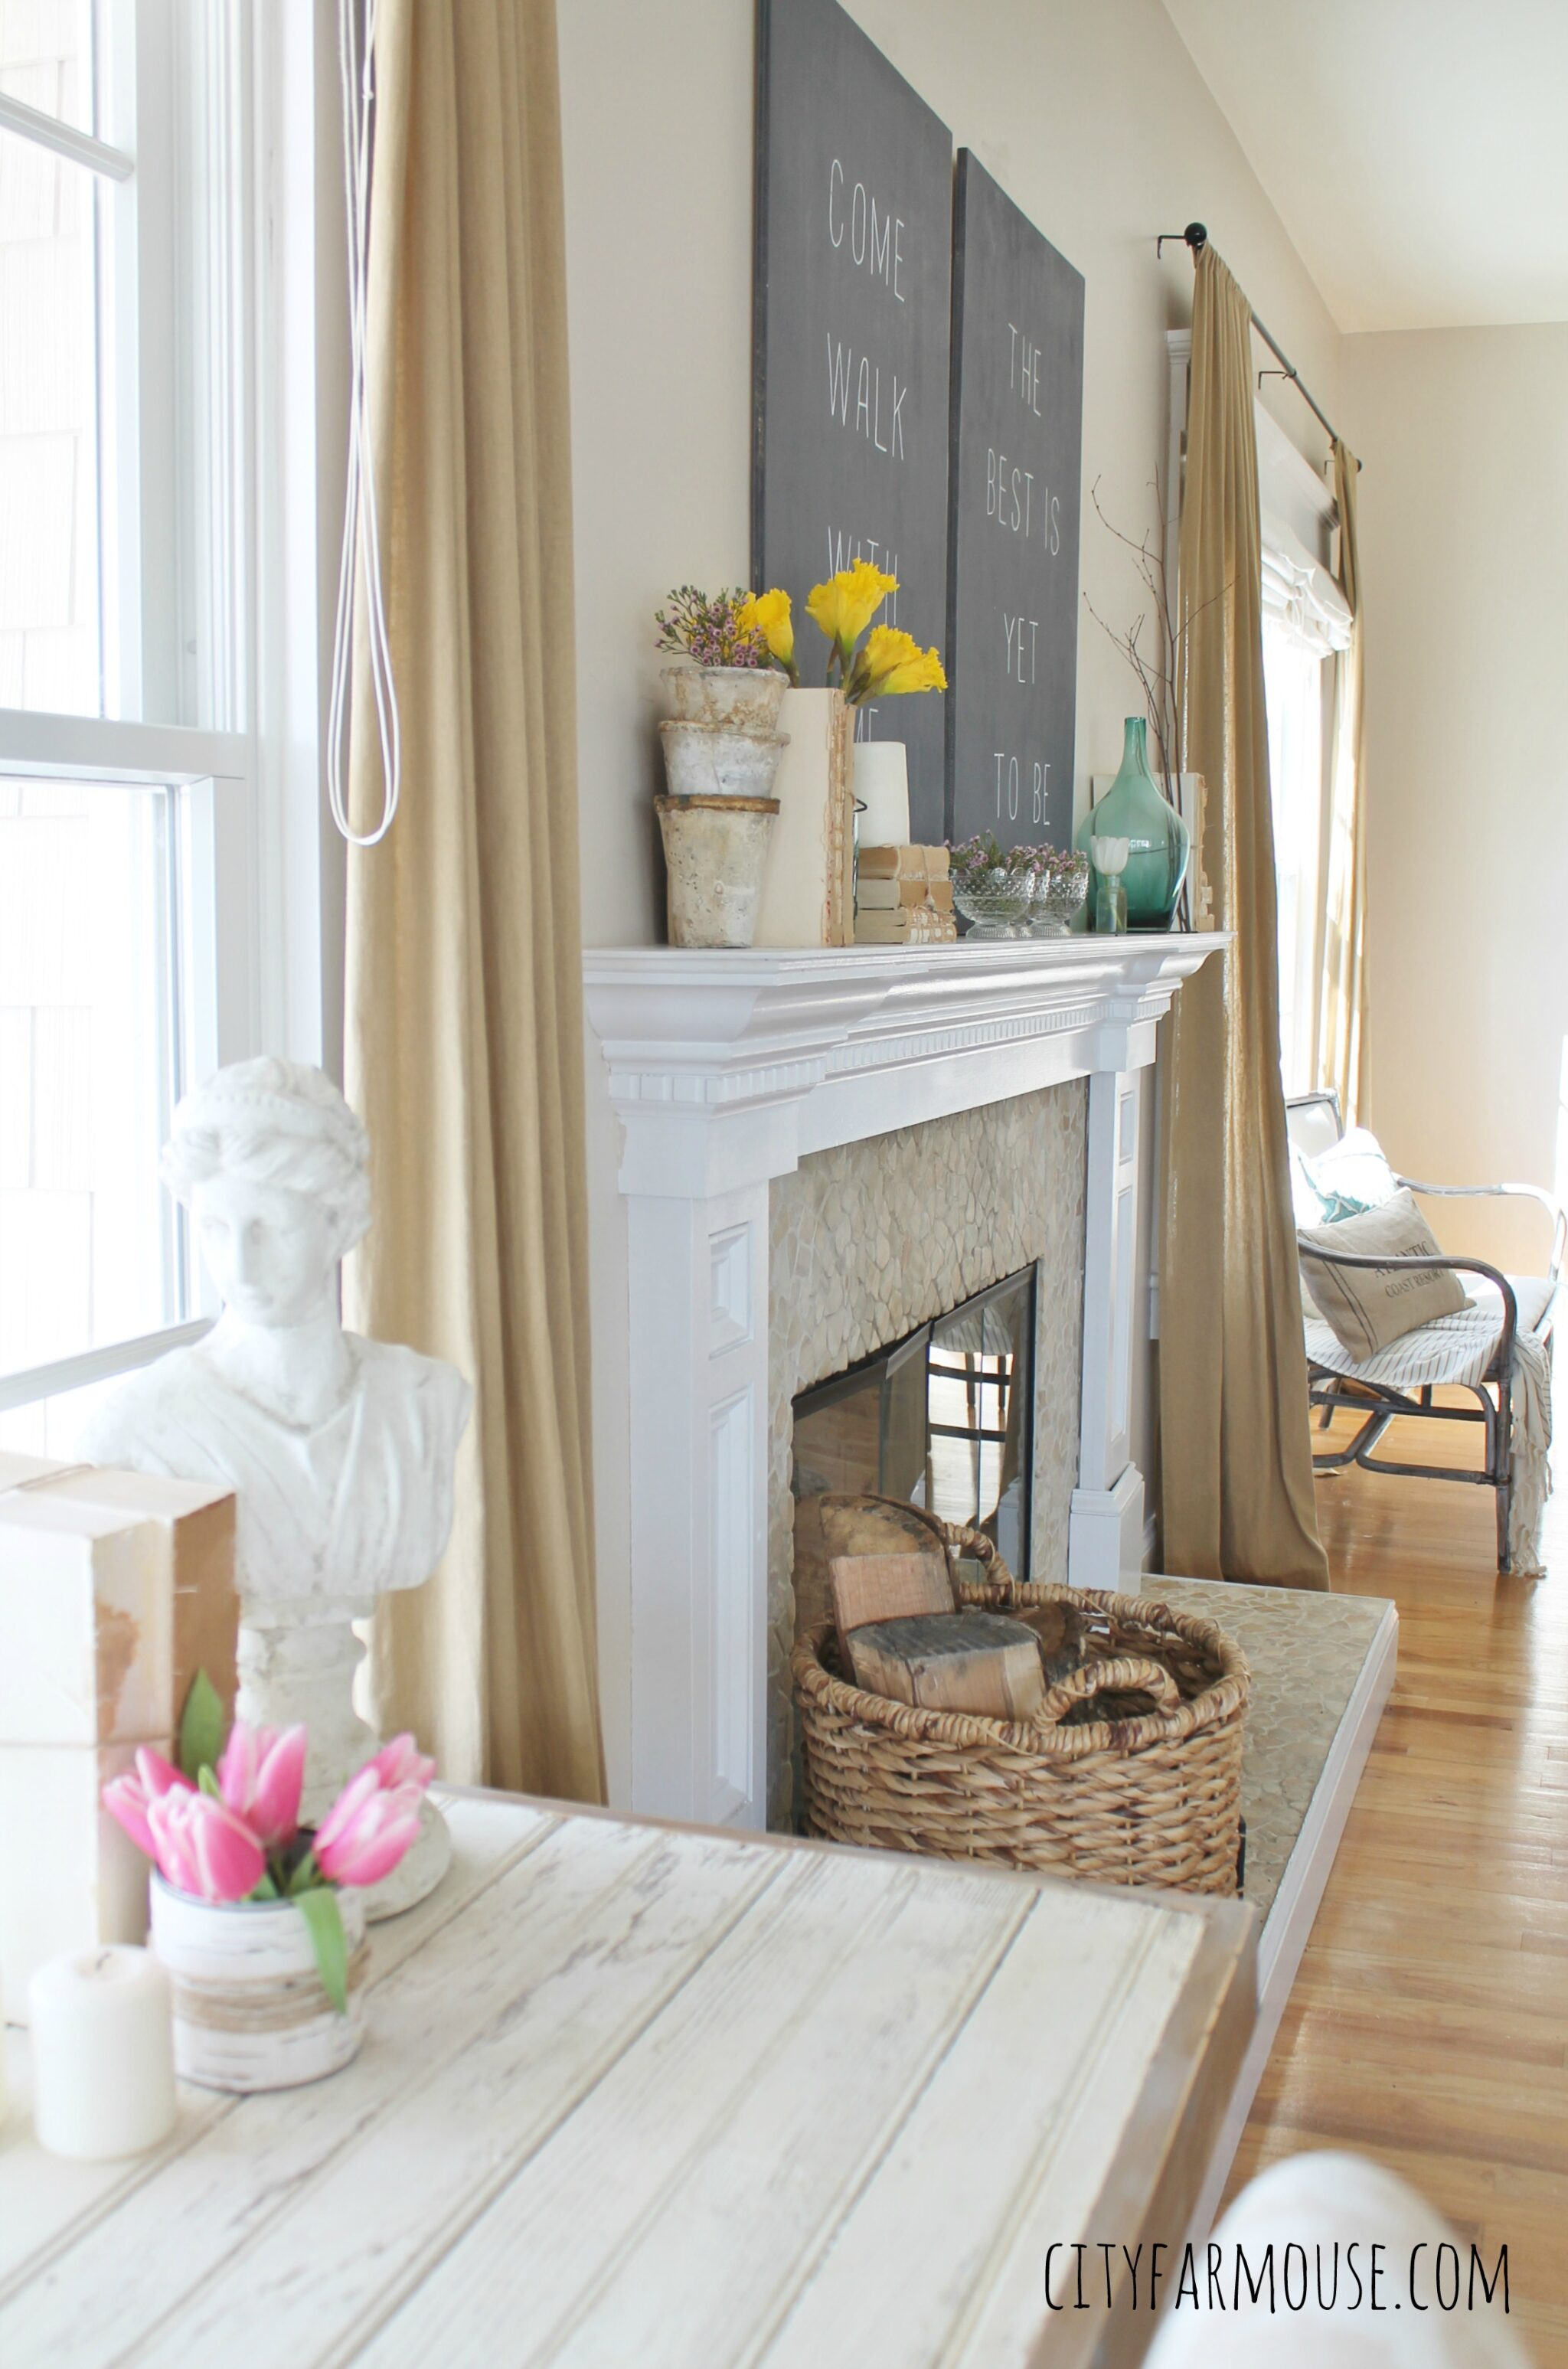 Home Design Ideas: Seasons Of Home- Easy Decorating Ideas For Spring